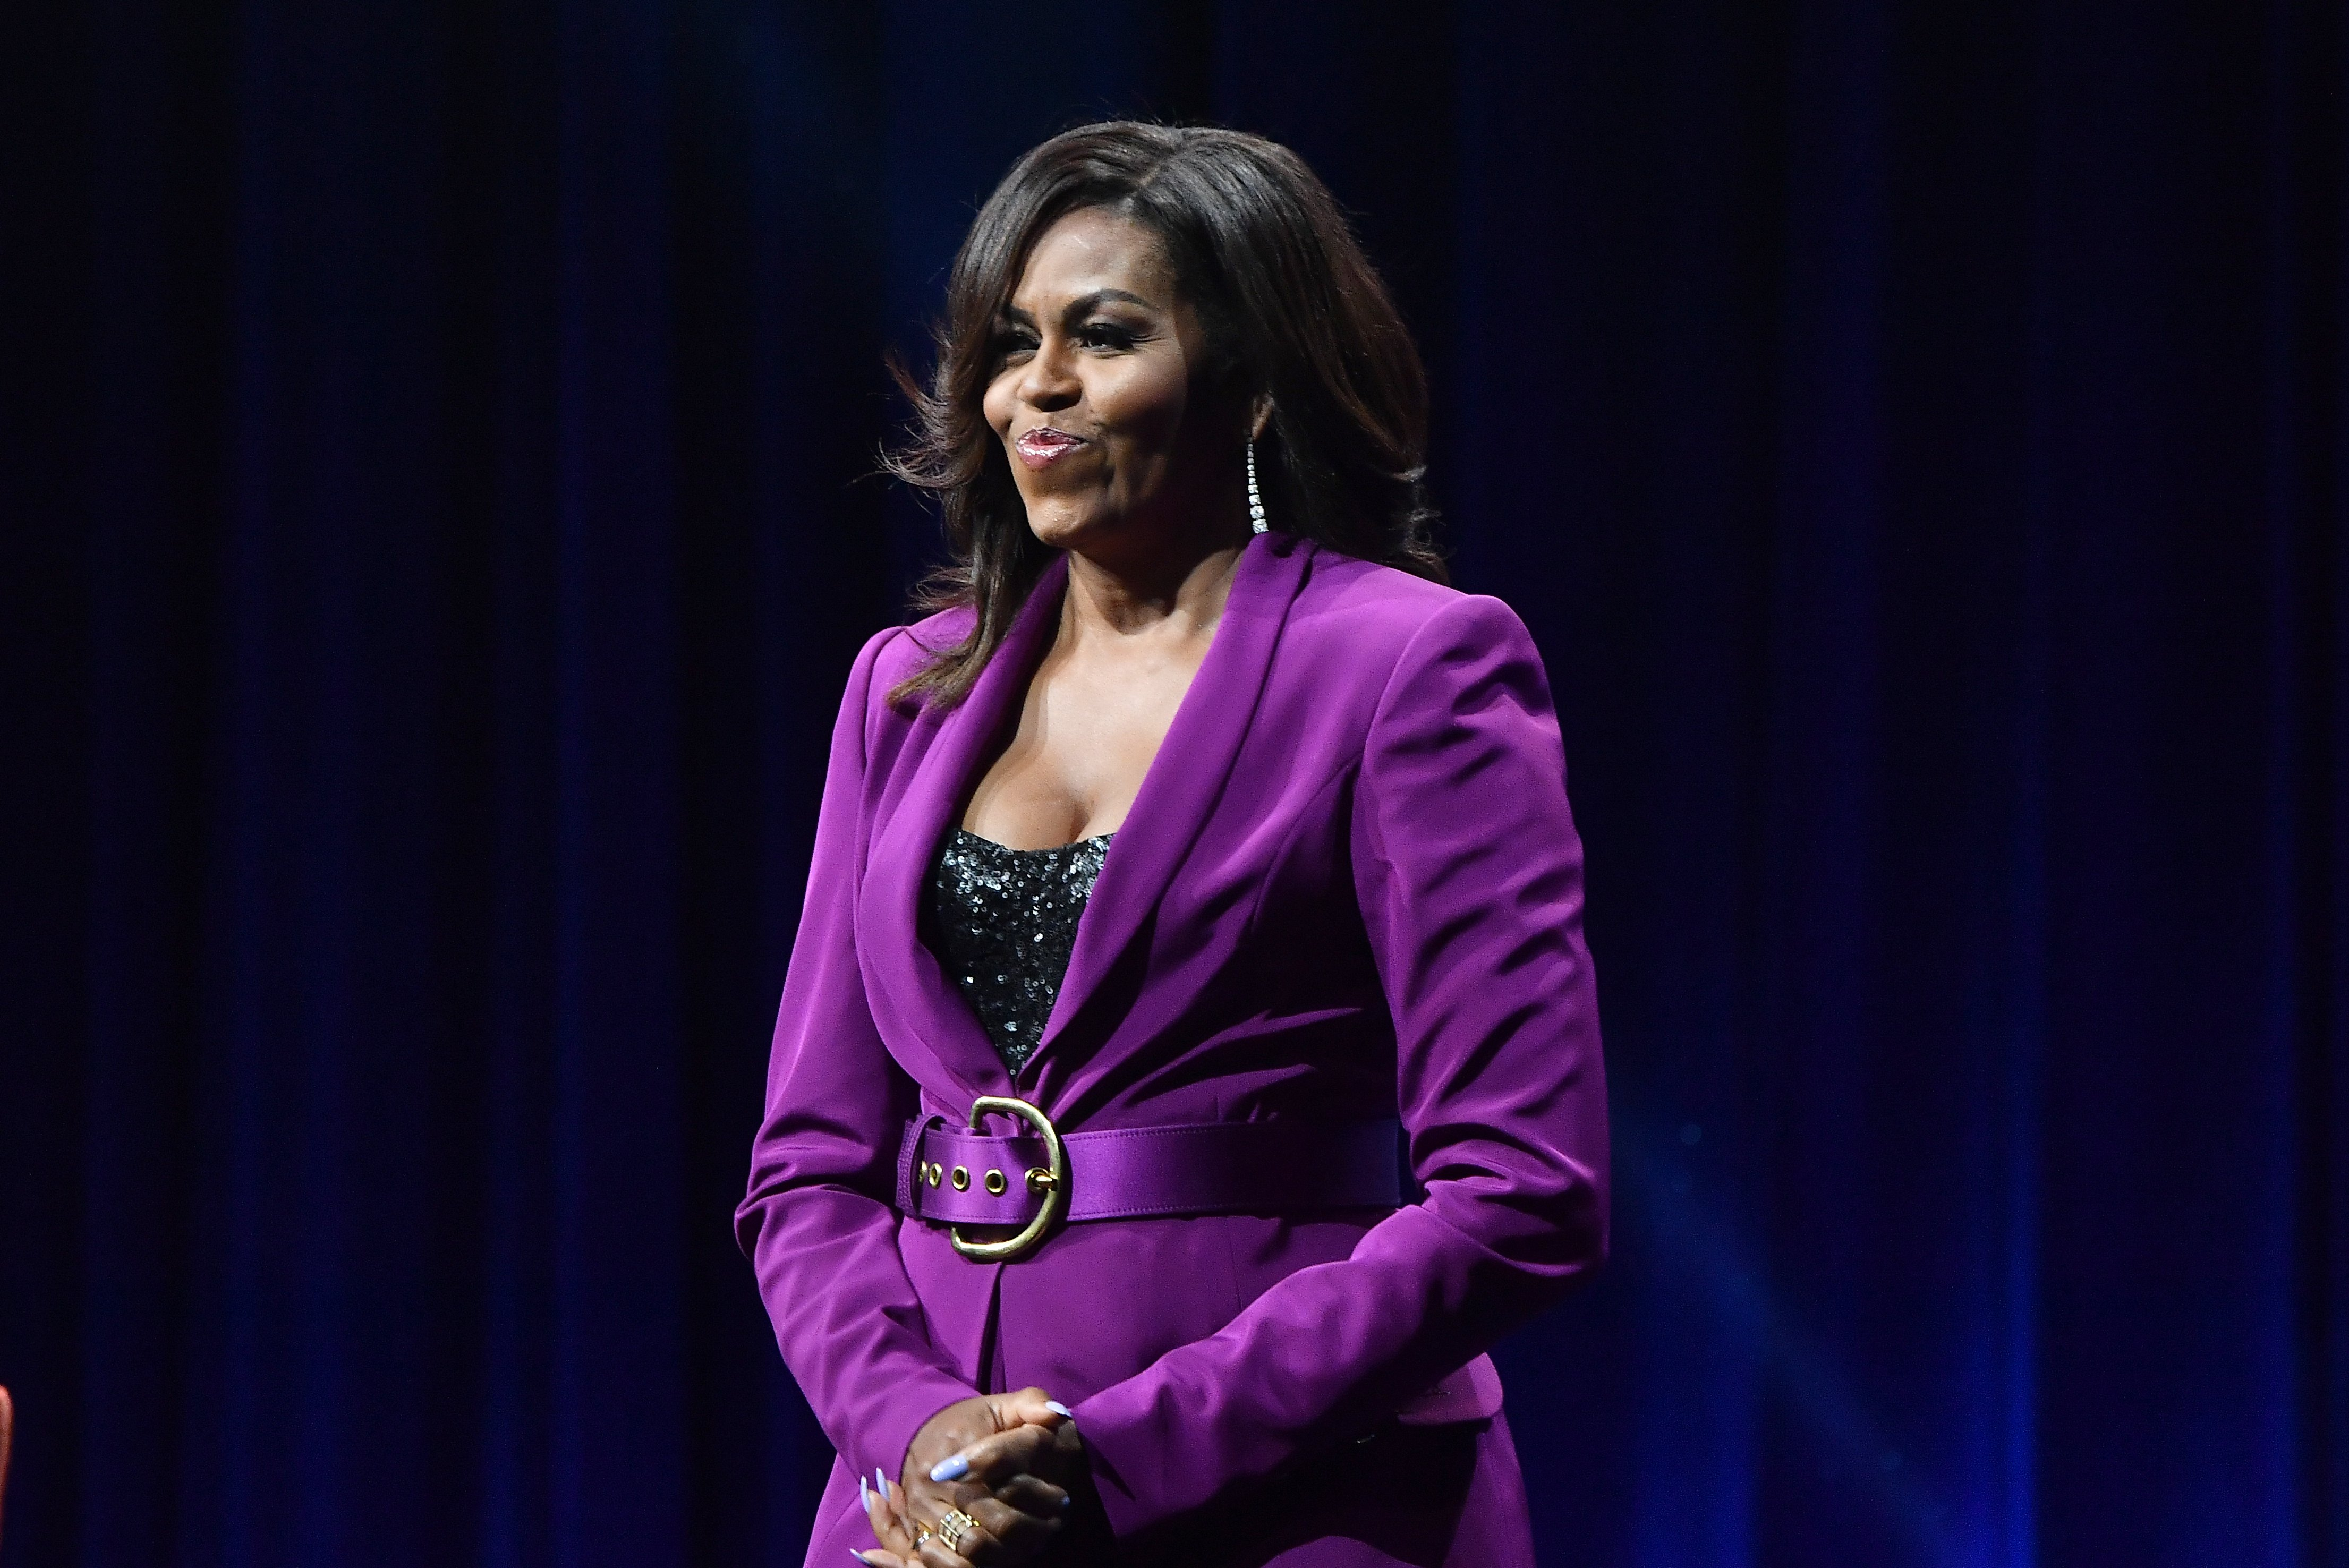 Michelle Obama, former First Lady of the United States | Photo: Getty Images